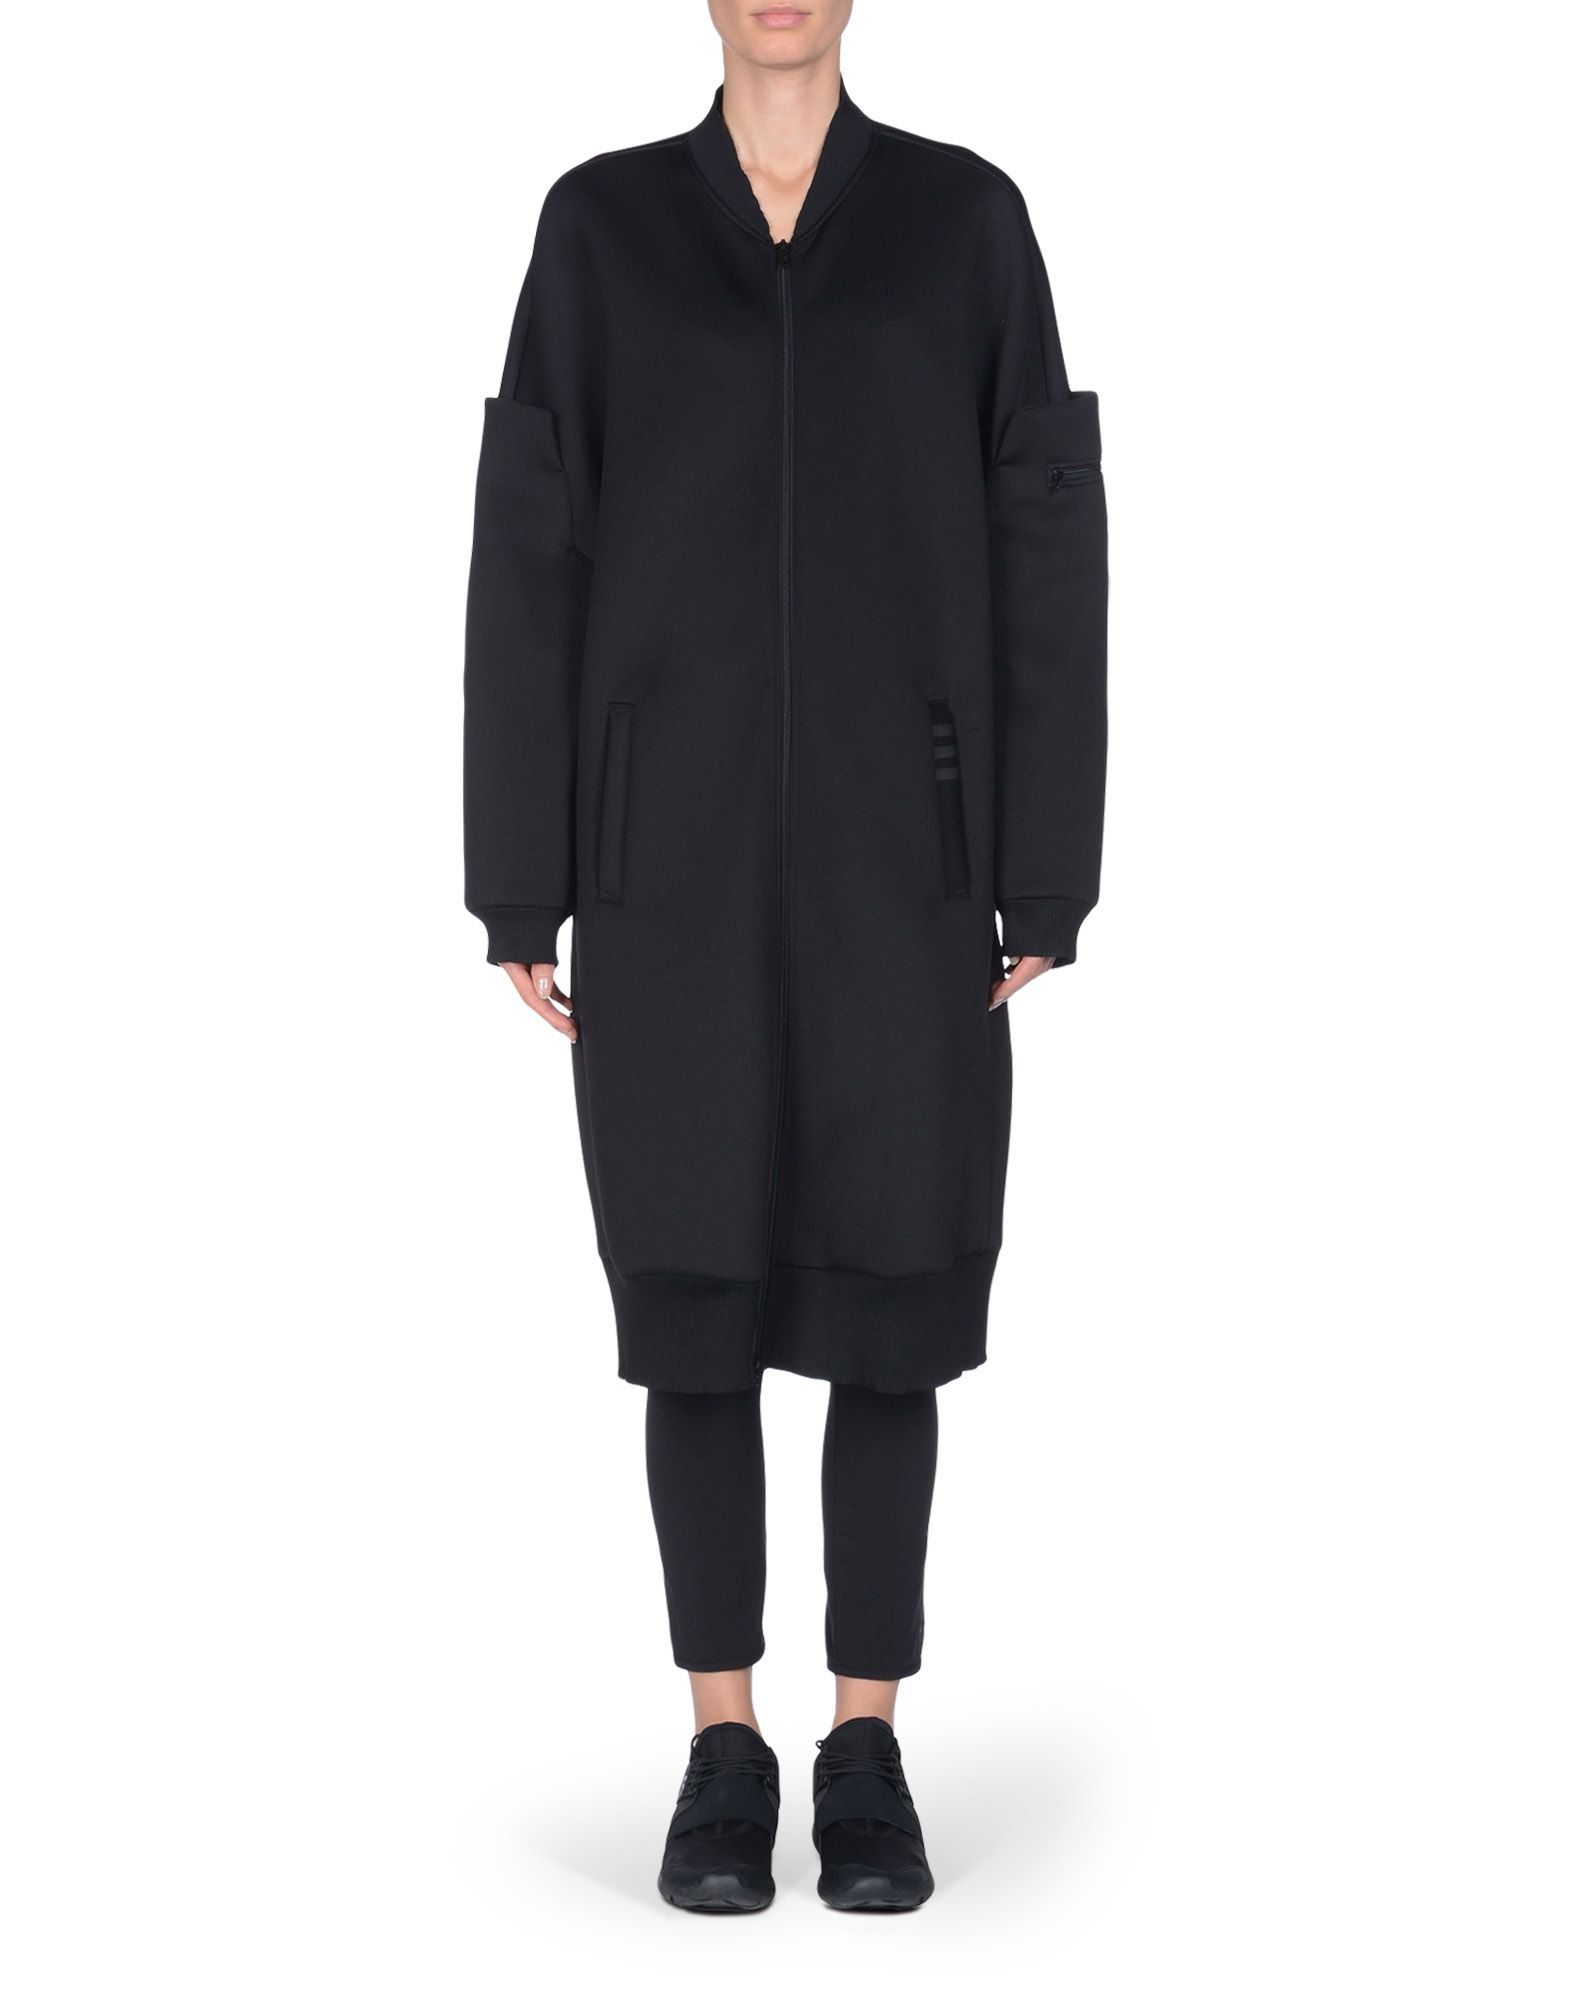 Y-3 SPACER LUX L BOMBER COATS & JACKETS woman Y-3 adidas